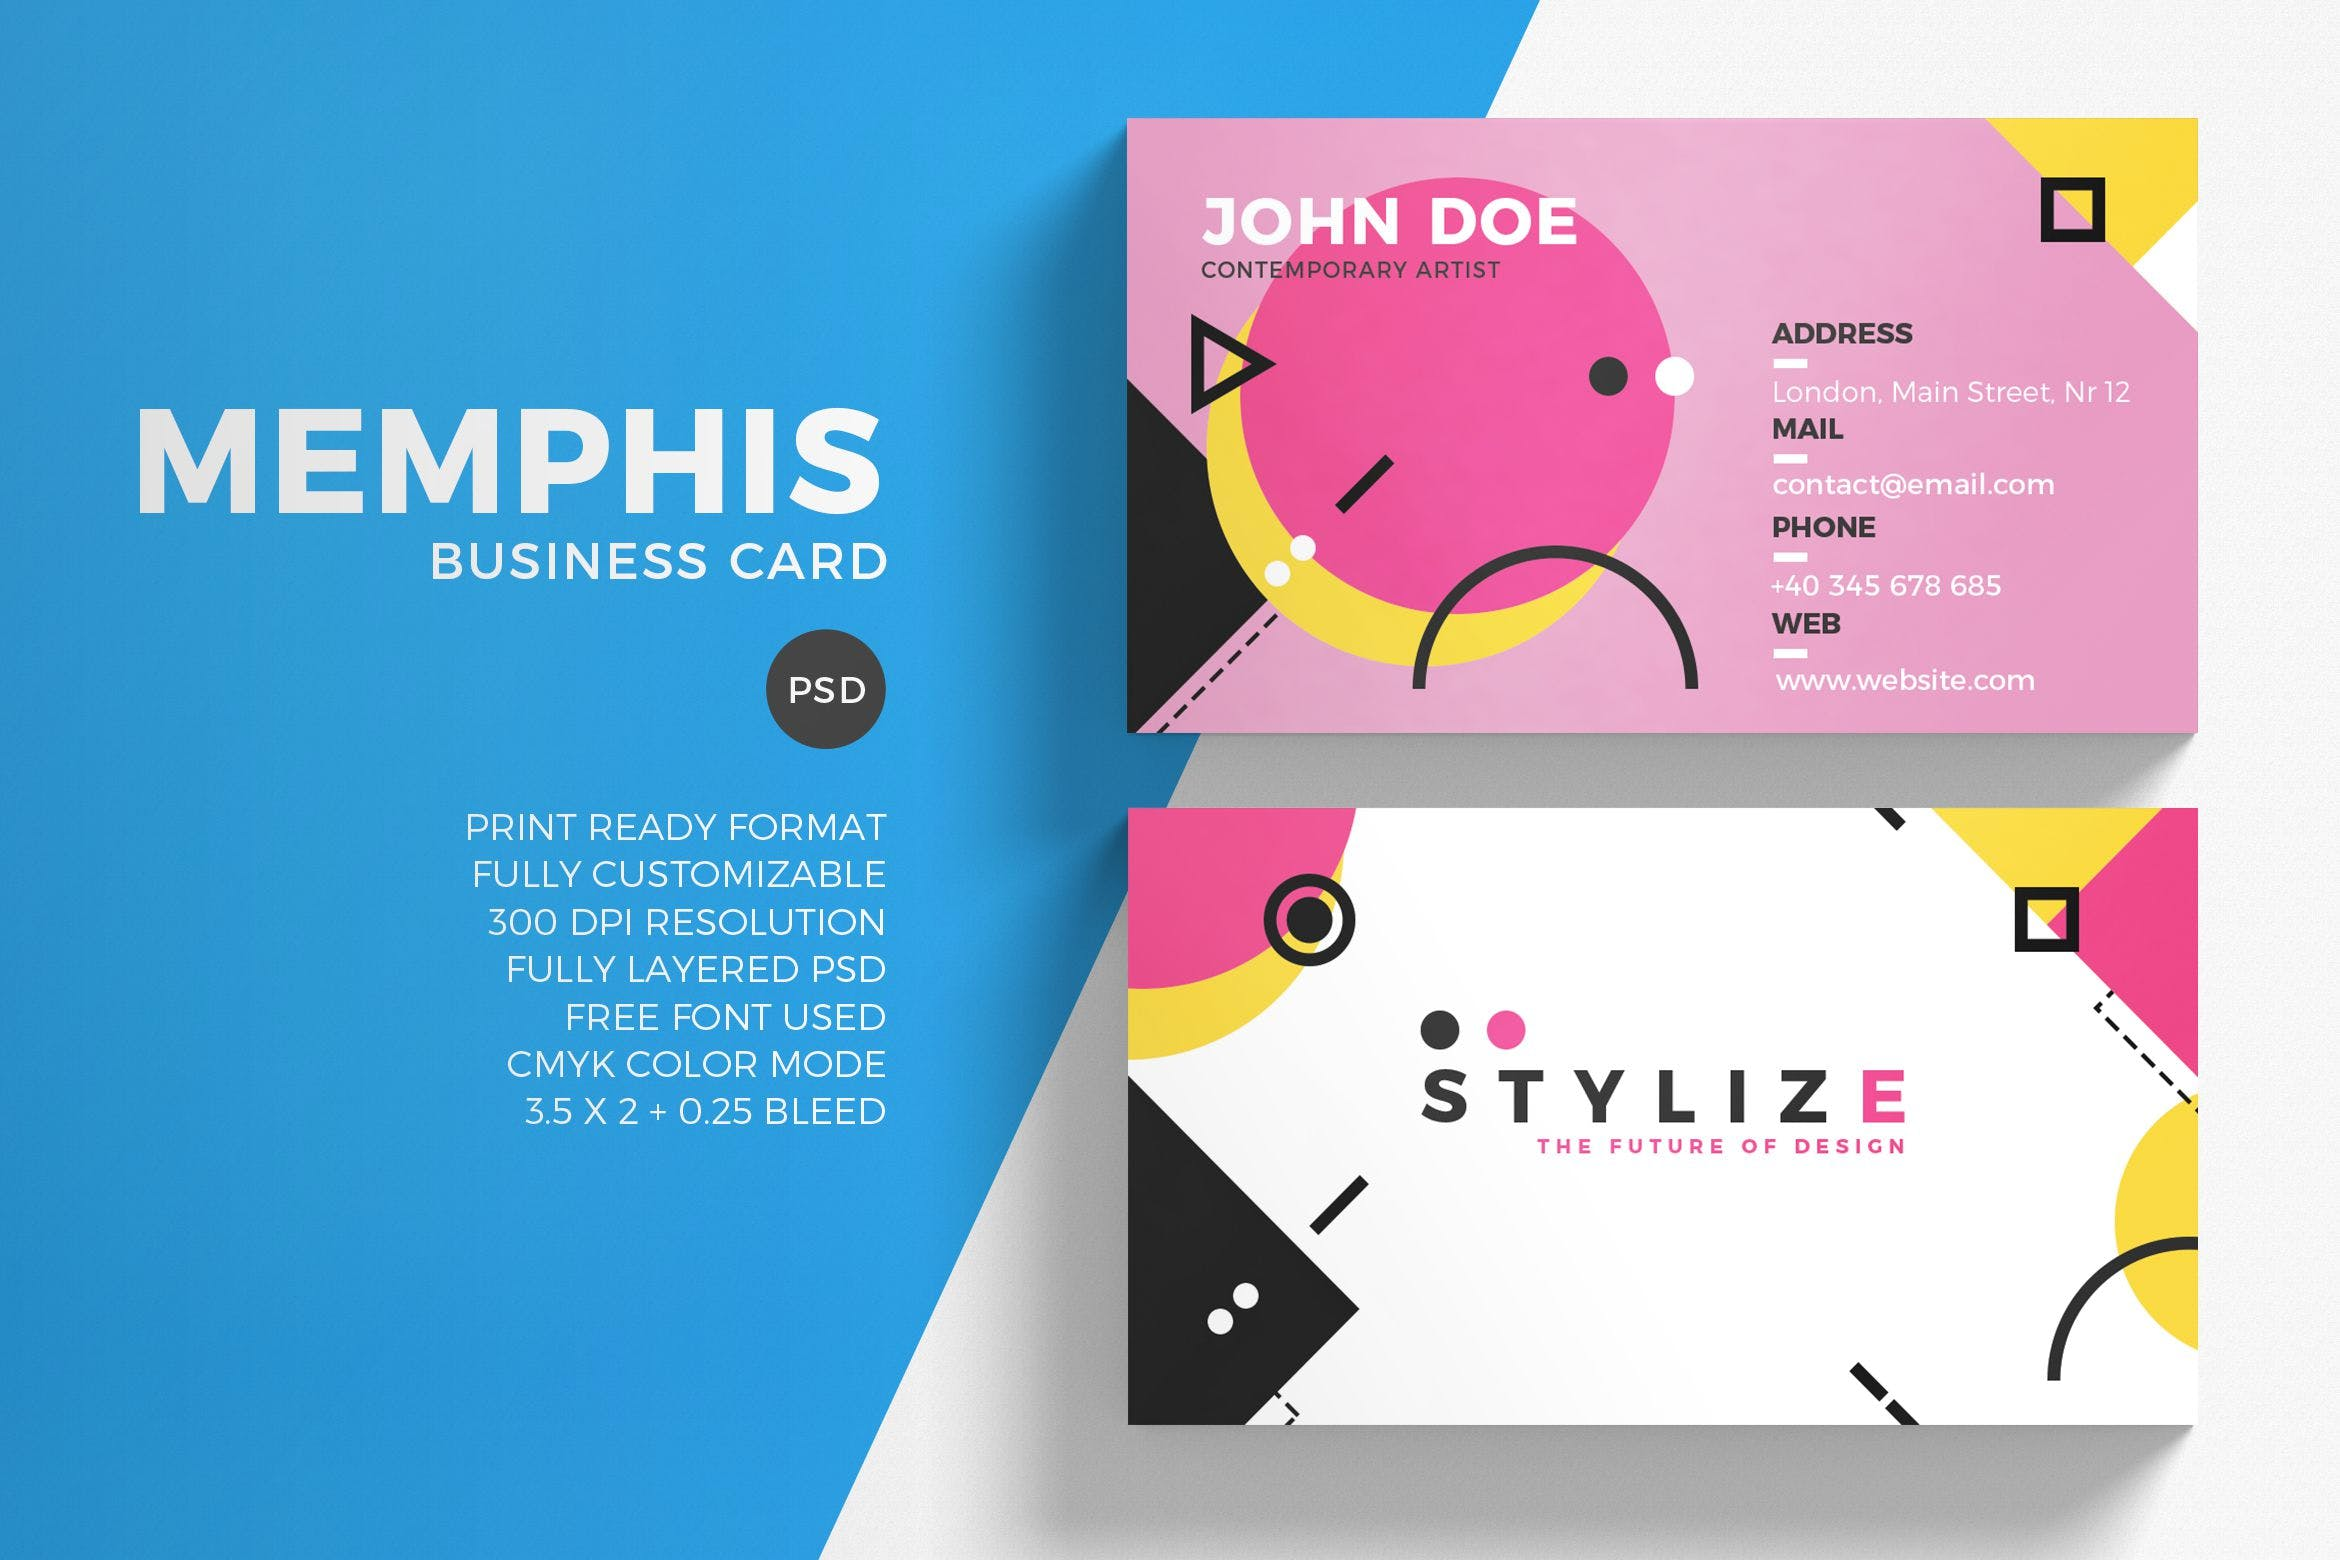 Memphis Business Card Template by Sztufi on Envato Elements